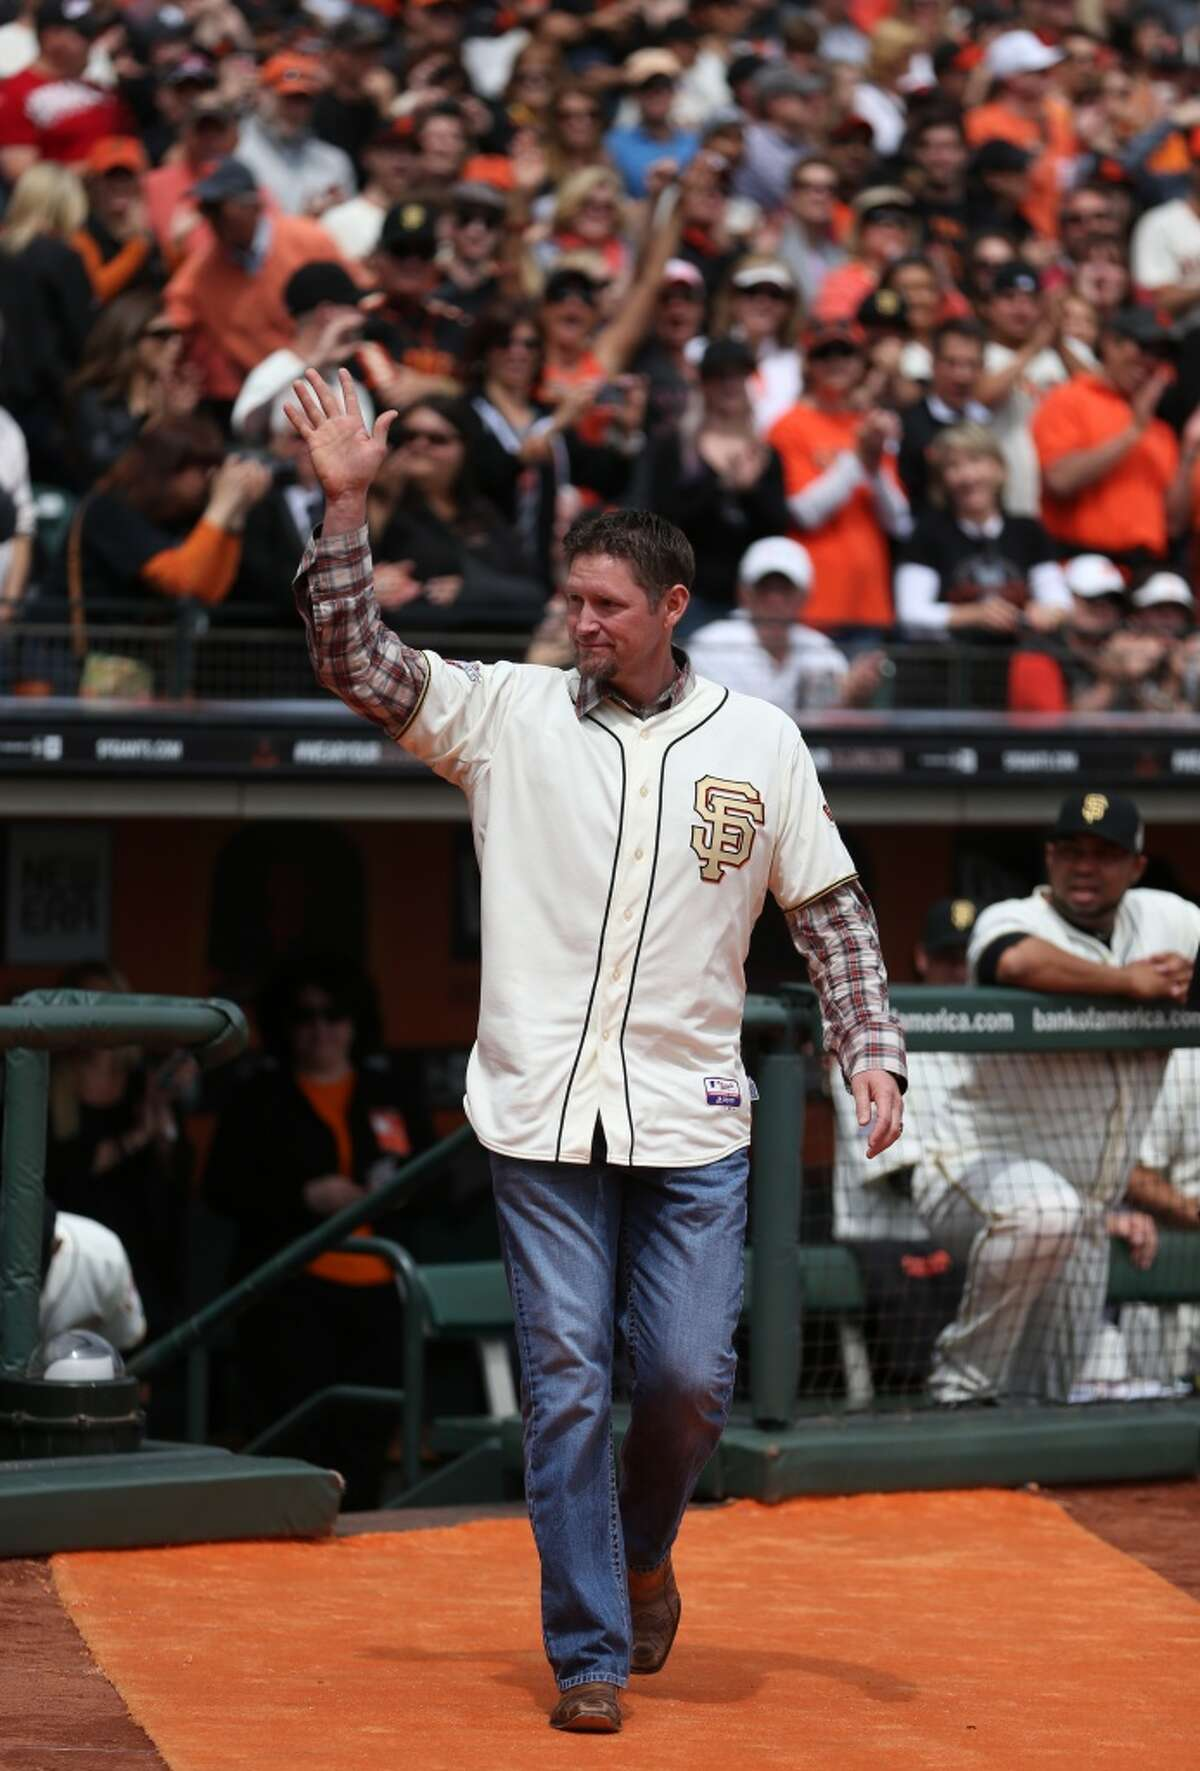 Aubrey Huff retired in 2012 (he's seen here getting his 2012 World Series ring). After a stint as an announcer with the Pac-12 Network and as a radio show co-host at 95.7, he became a volunteer baseball coach, according to his Twitter bio. He's now preparing for a return to the baseball diamond.